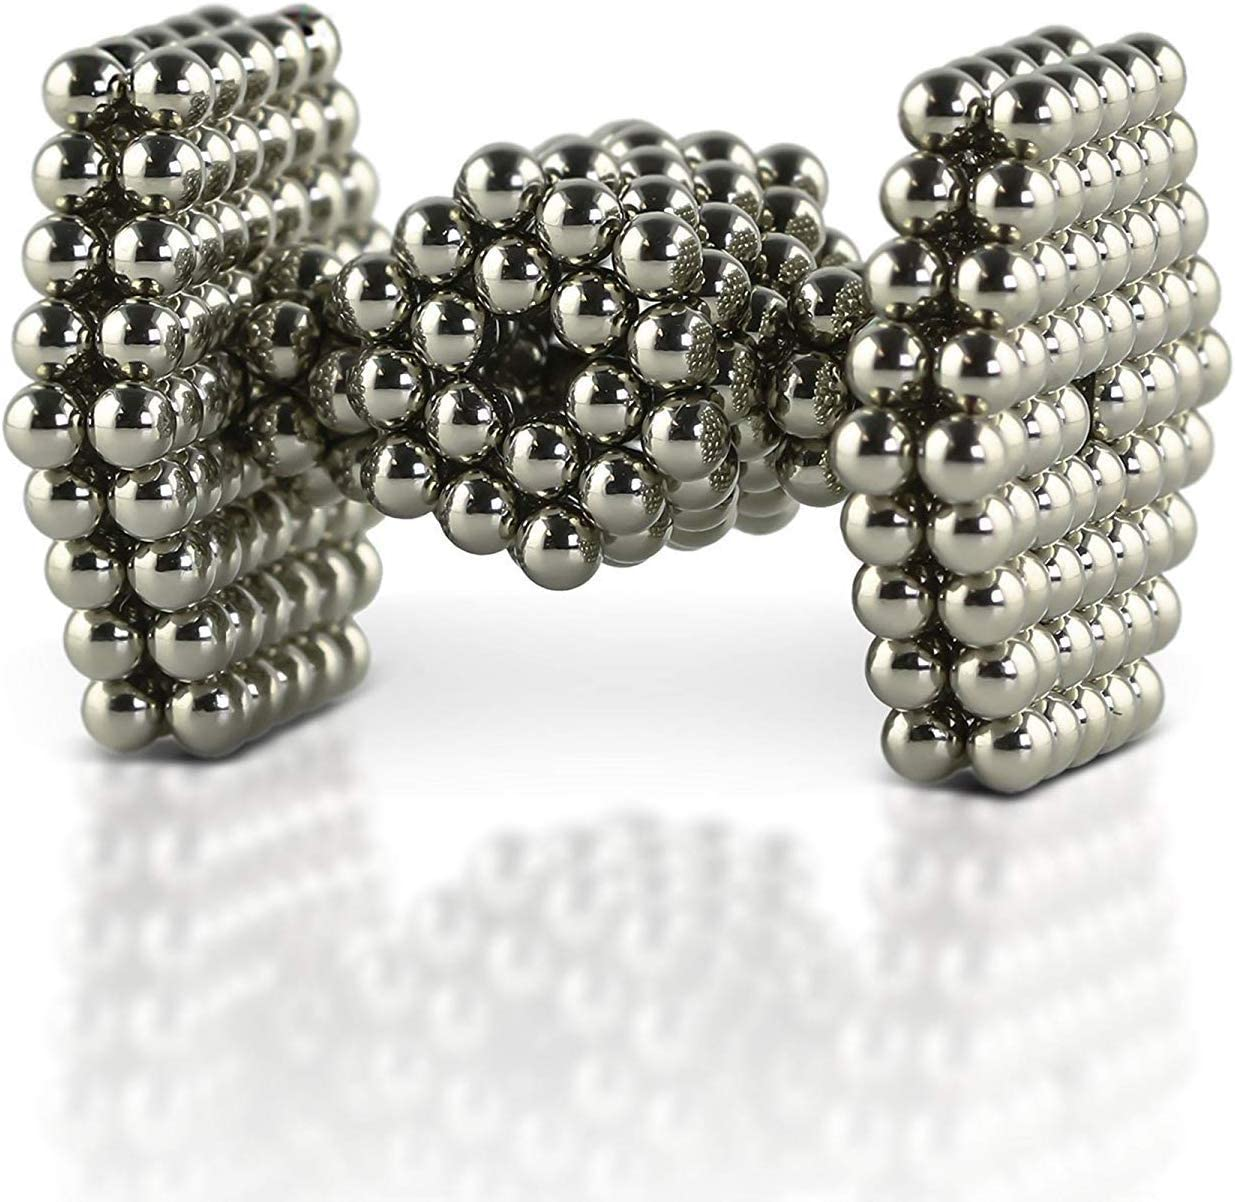 Magnets Sculpture Building Blocks Toys for Intelligence Learning-Office Toy /& Stress Relief for Adults N-A 3MM Magnetic Balls 1000 3MM Silver